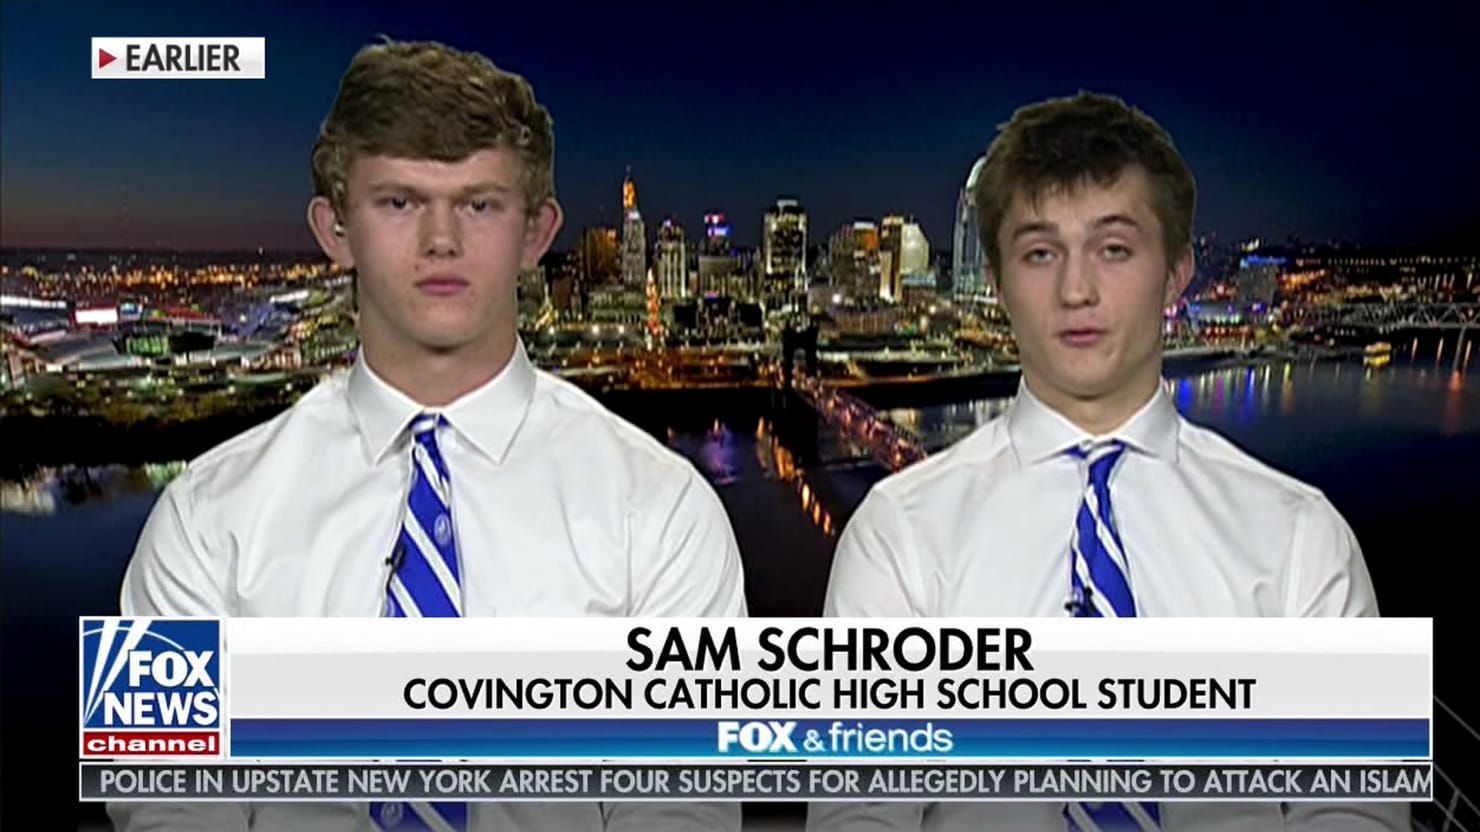 Covington Catholic Teen on 'Fox & Friends': Blackface Is 'School Spirit'